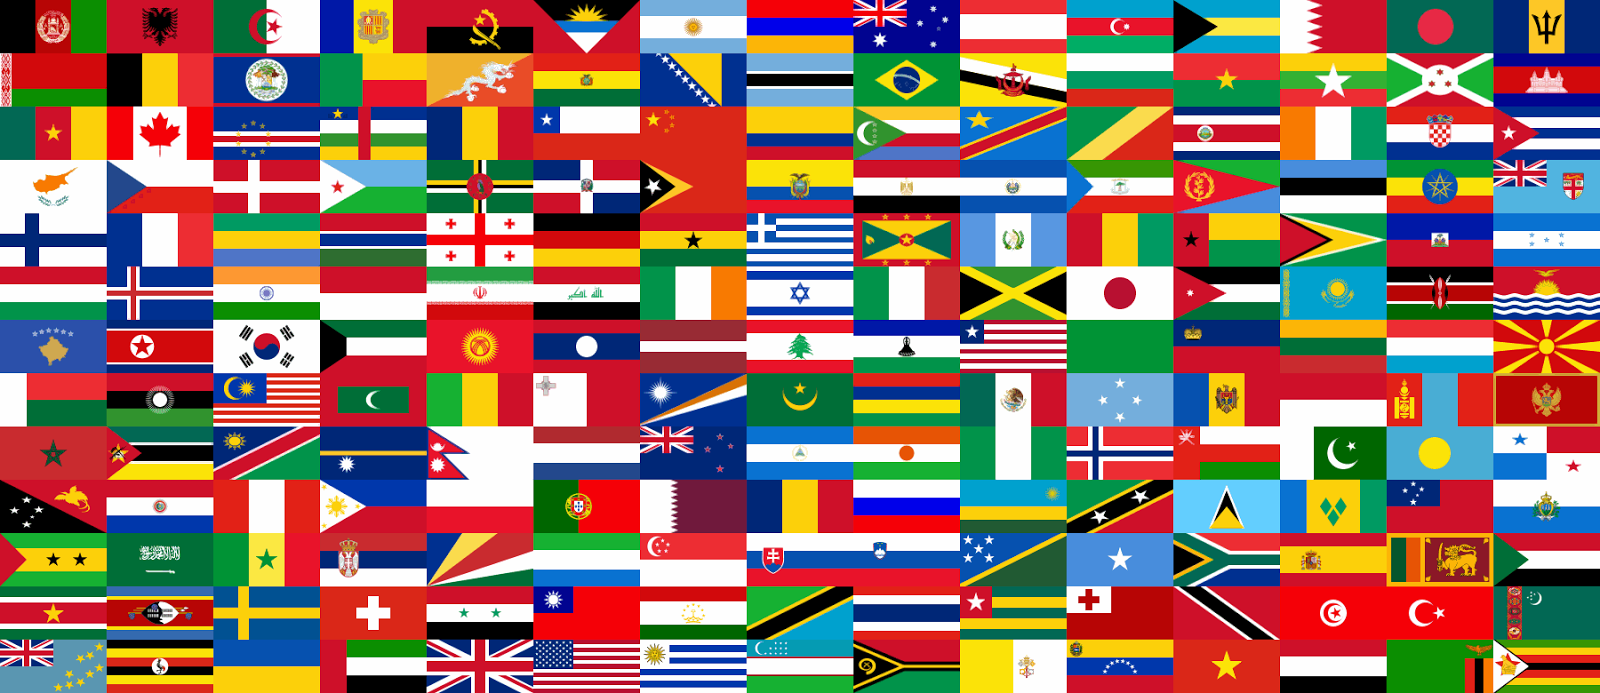 Flags From Every Country in the World What to Do When Bored